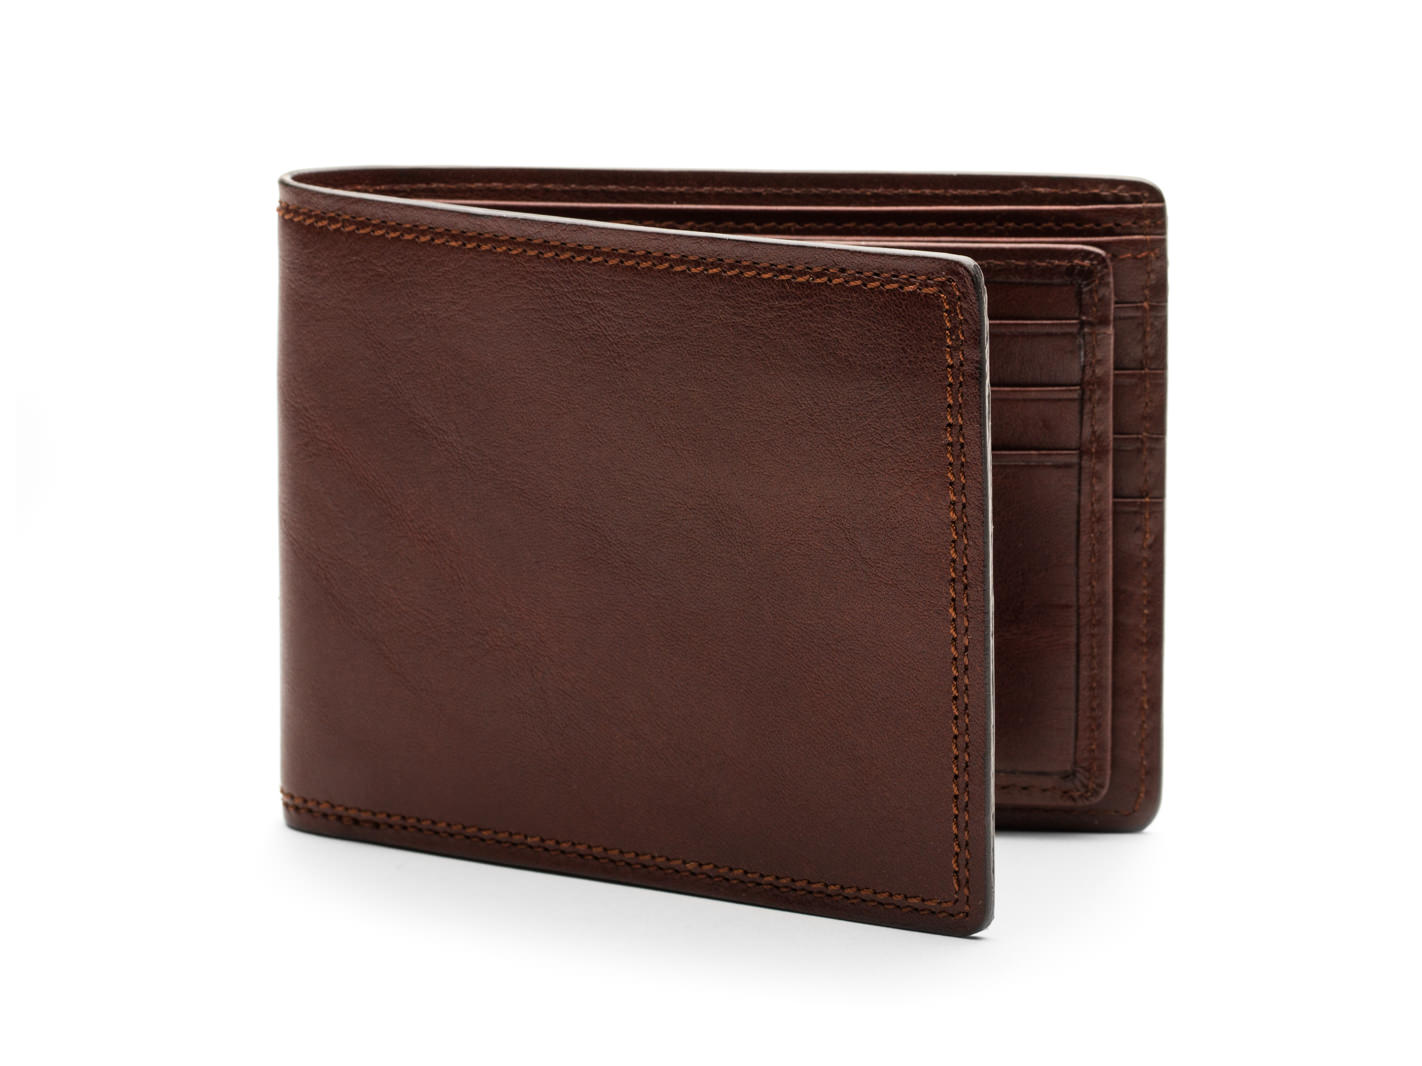 Euro 8 Pocket Deluxe Executive Wallet w/ Passcase-218 Dark Brown - 218 Dark Brown